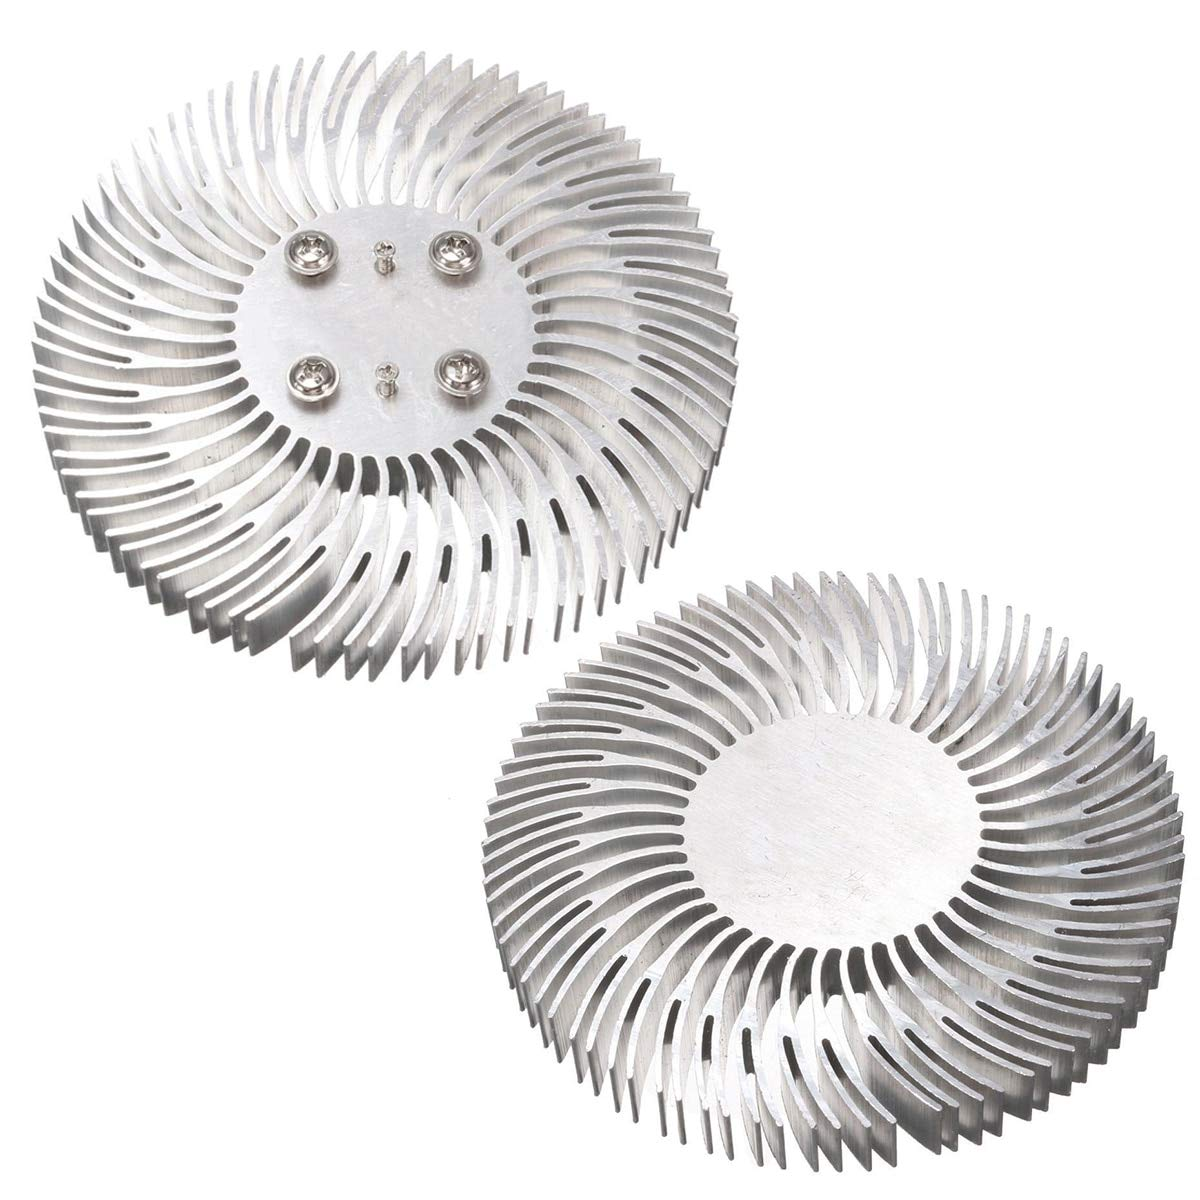 1pc Round Spiral Aluminum Heat Sink Radiator 9010mm With 6pcs Screws For 10W High Power LED Lamp Heat Dissipation Mayitr HAT33807